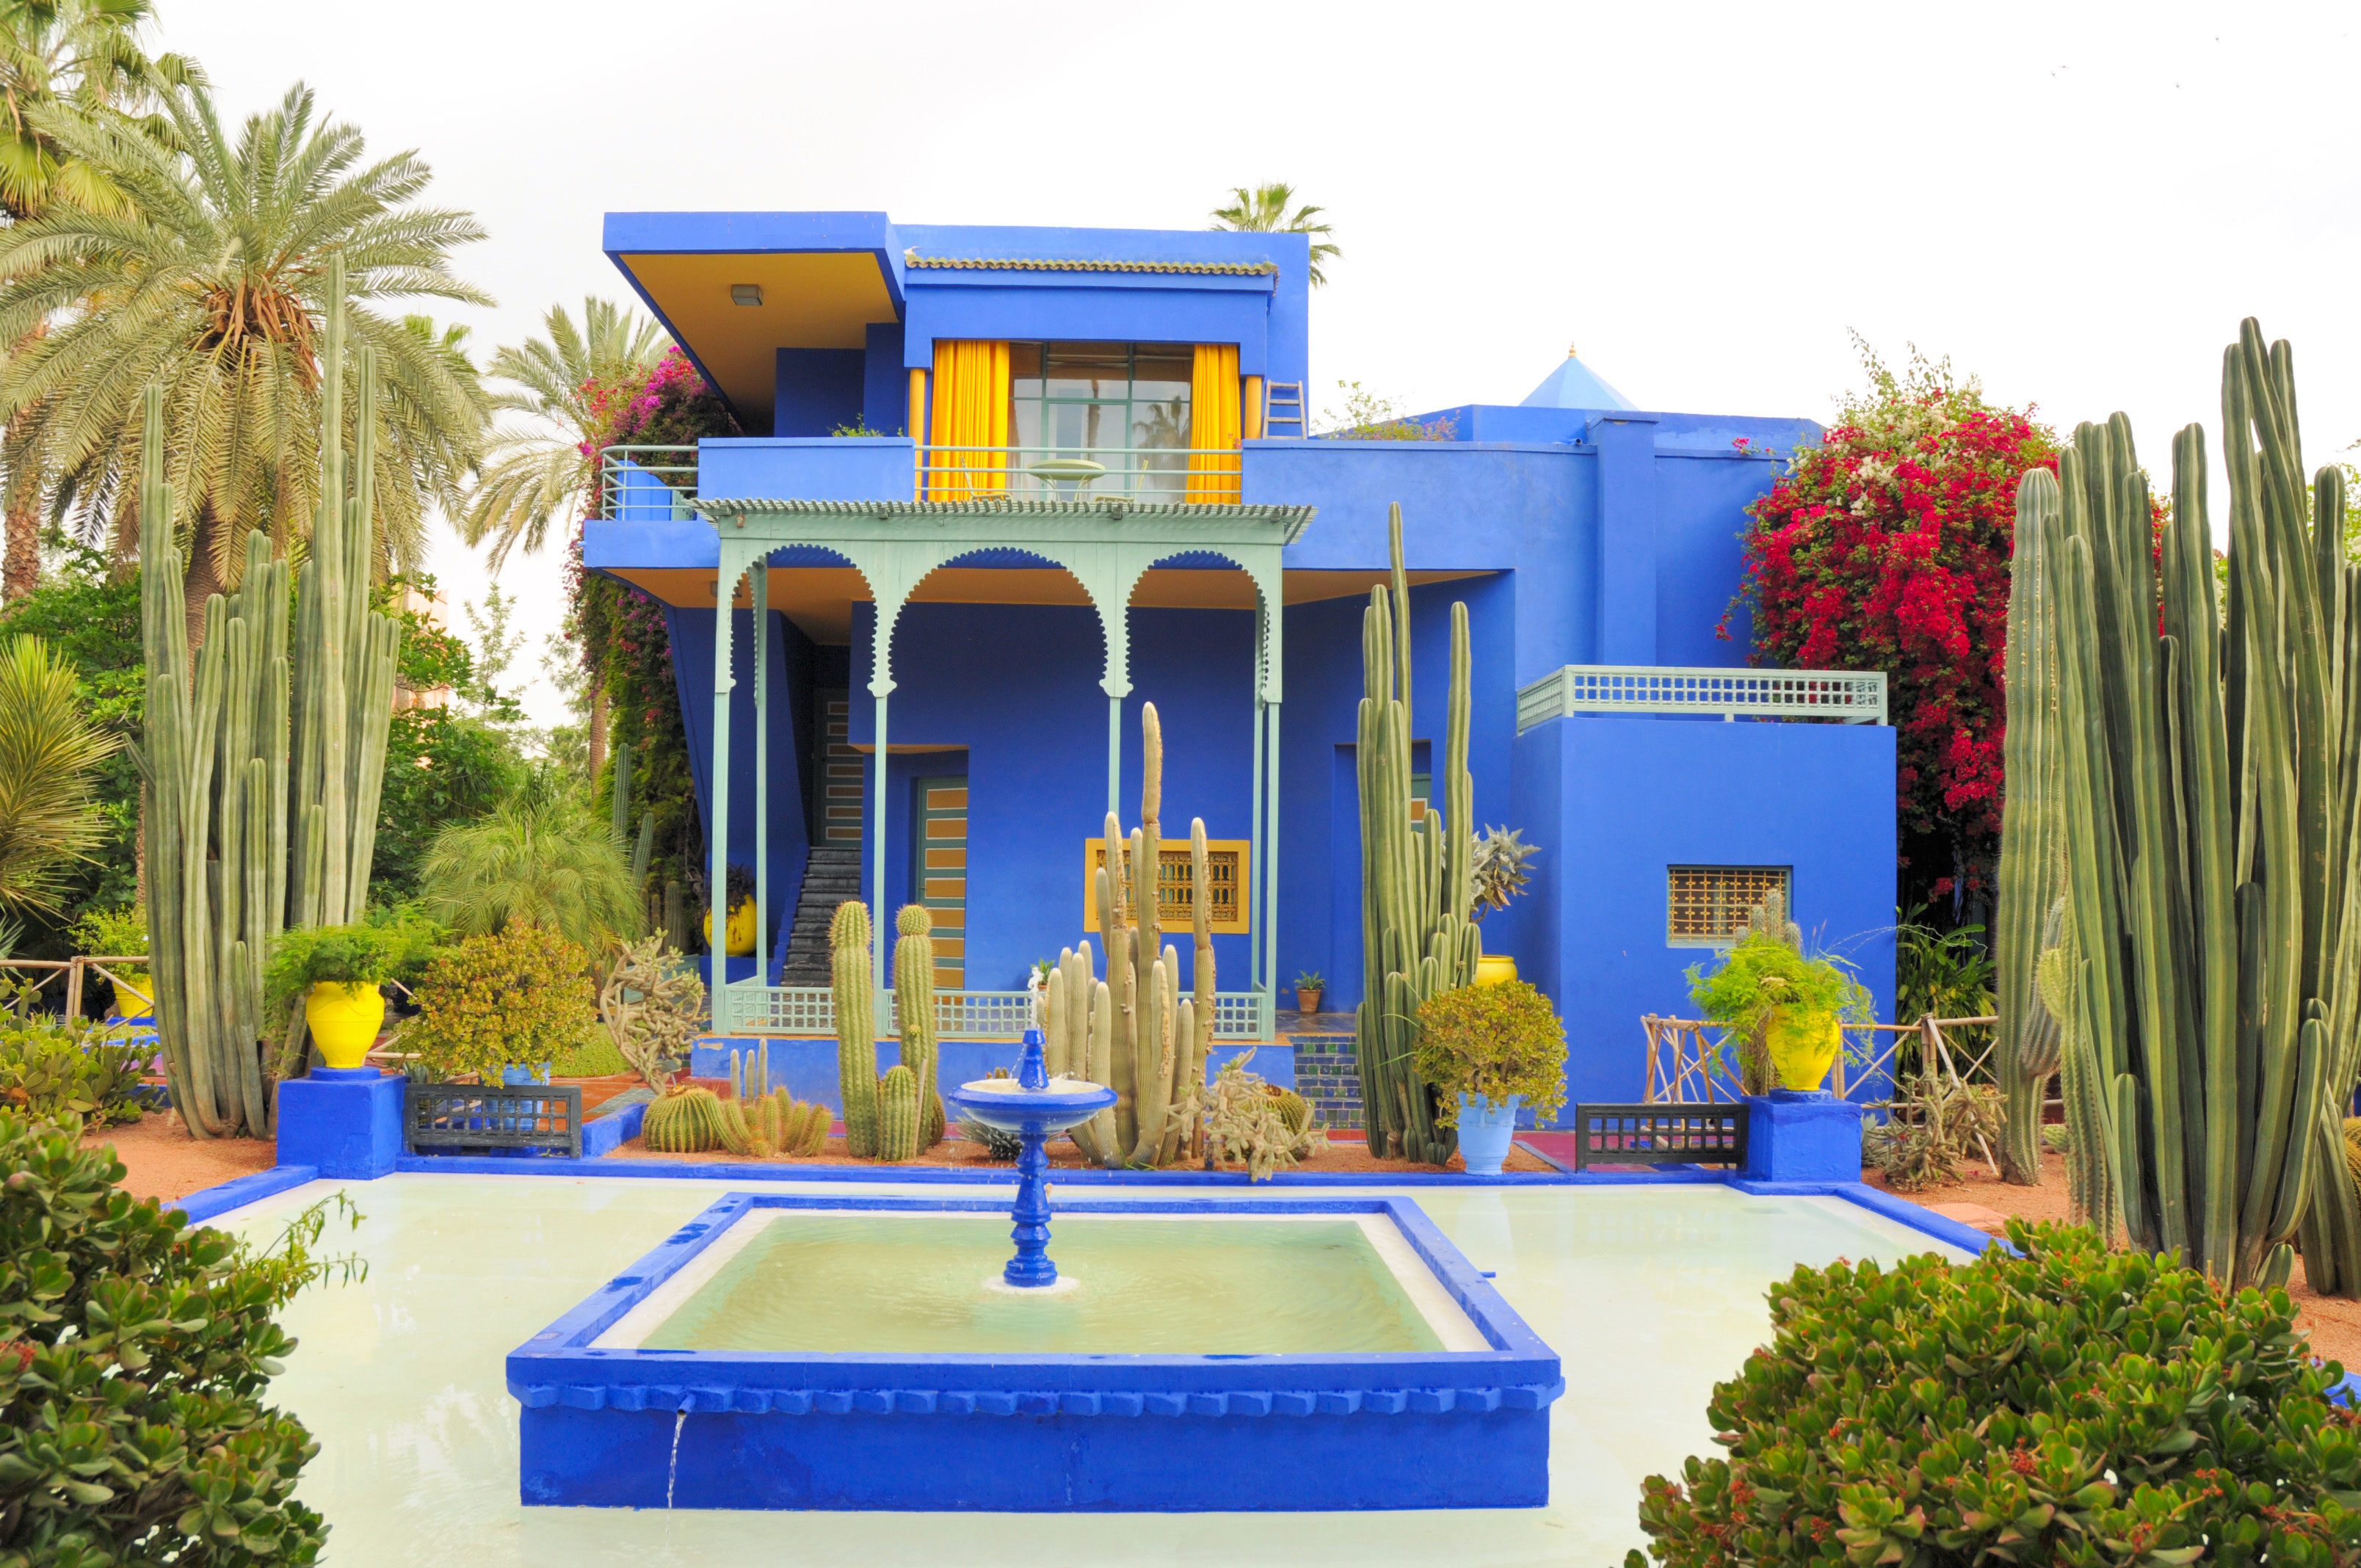 file le jardin des majorelle l5 jpg wikimedia commons. Black Bedroom Furniture Sets. Home Design Ideas